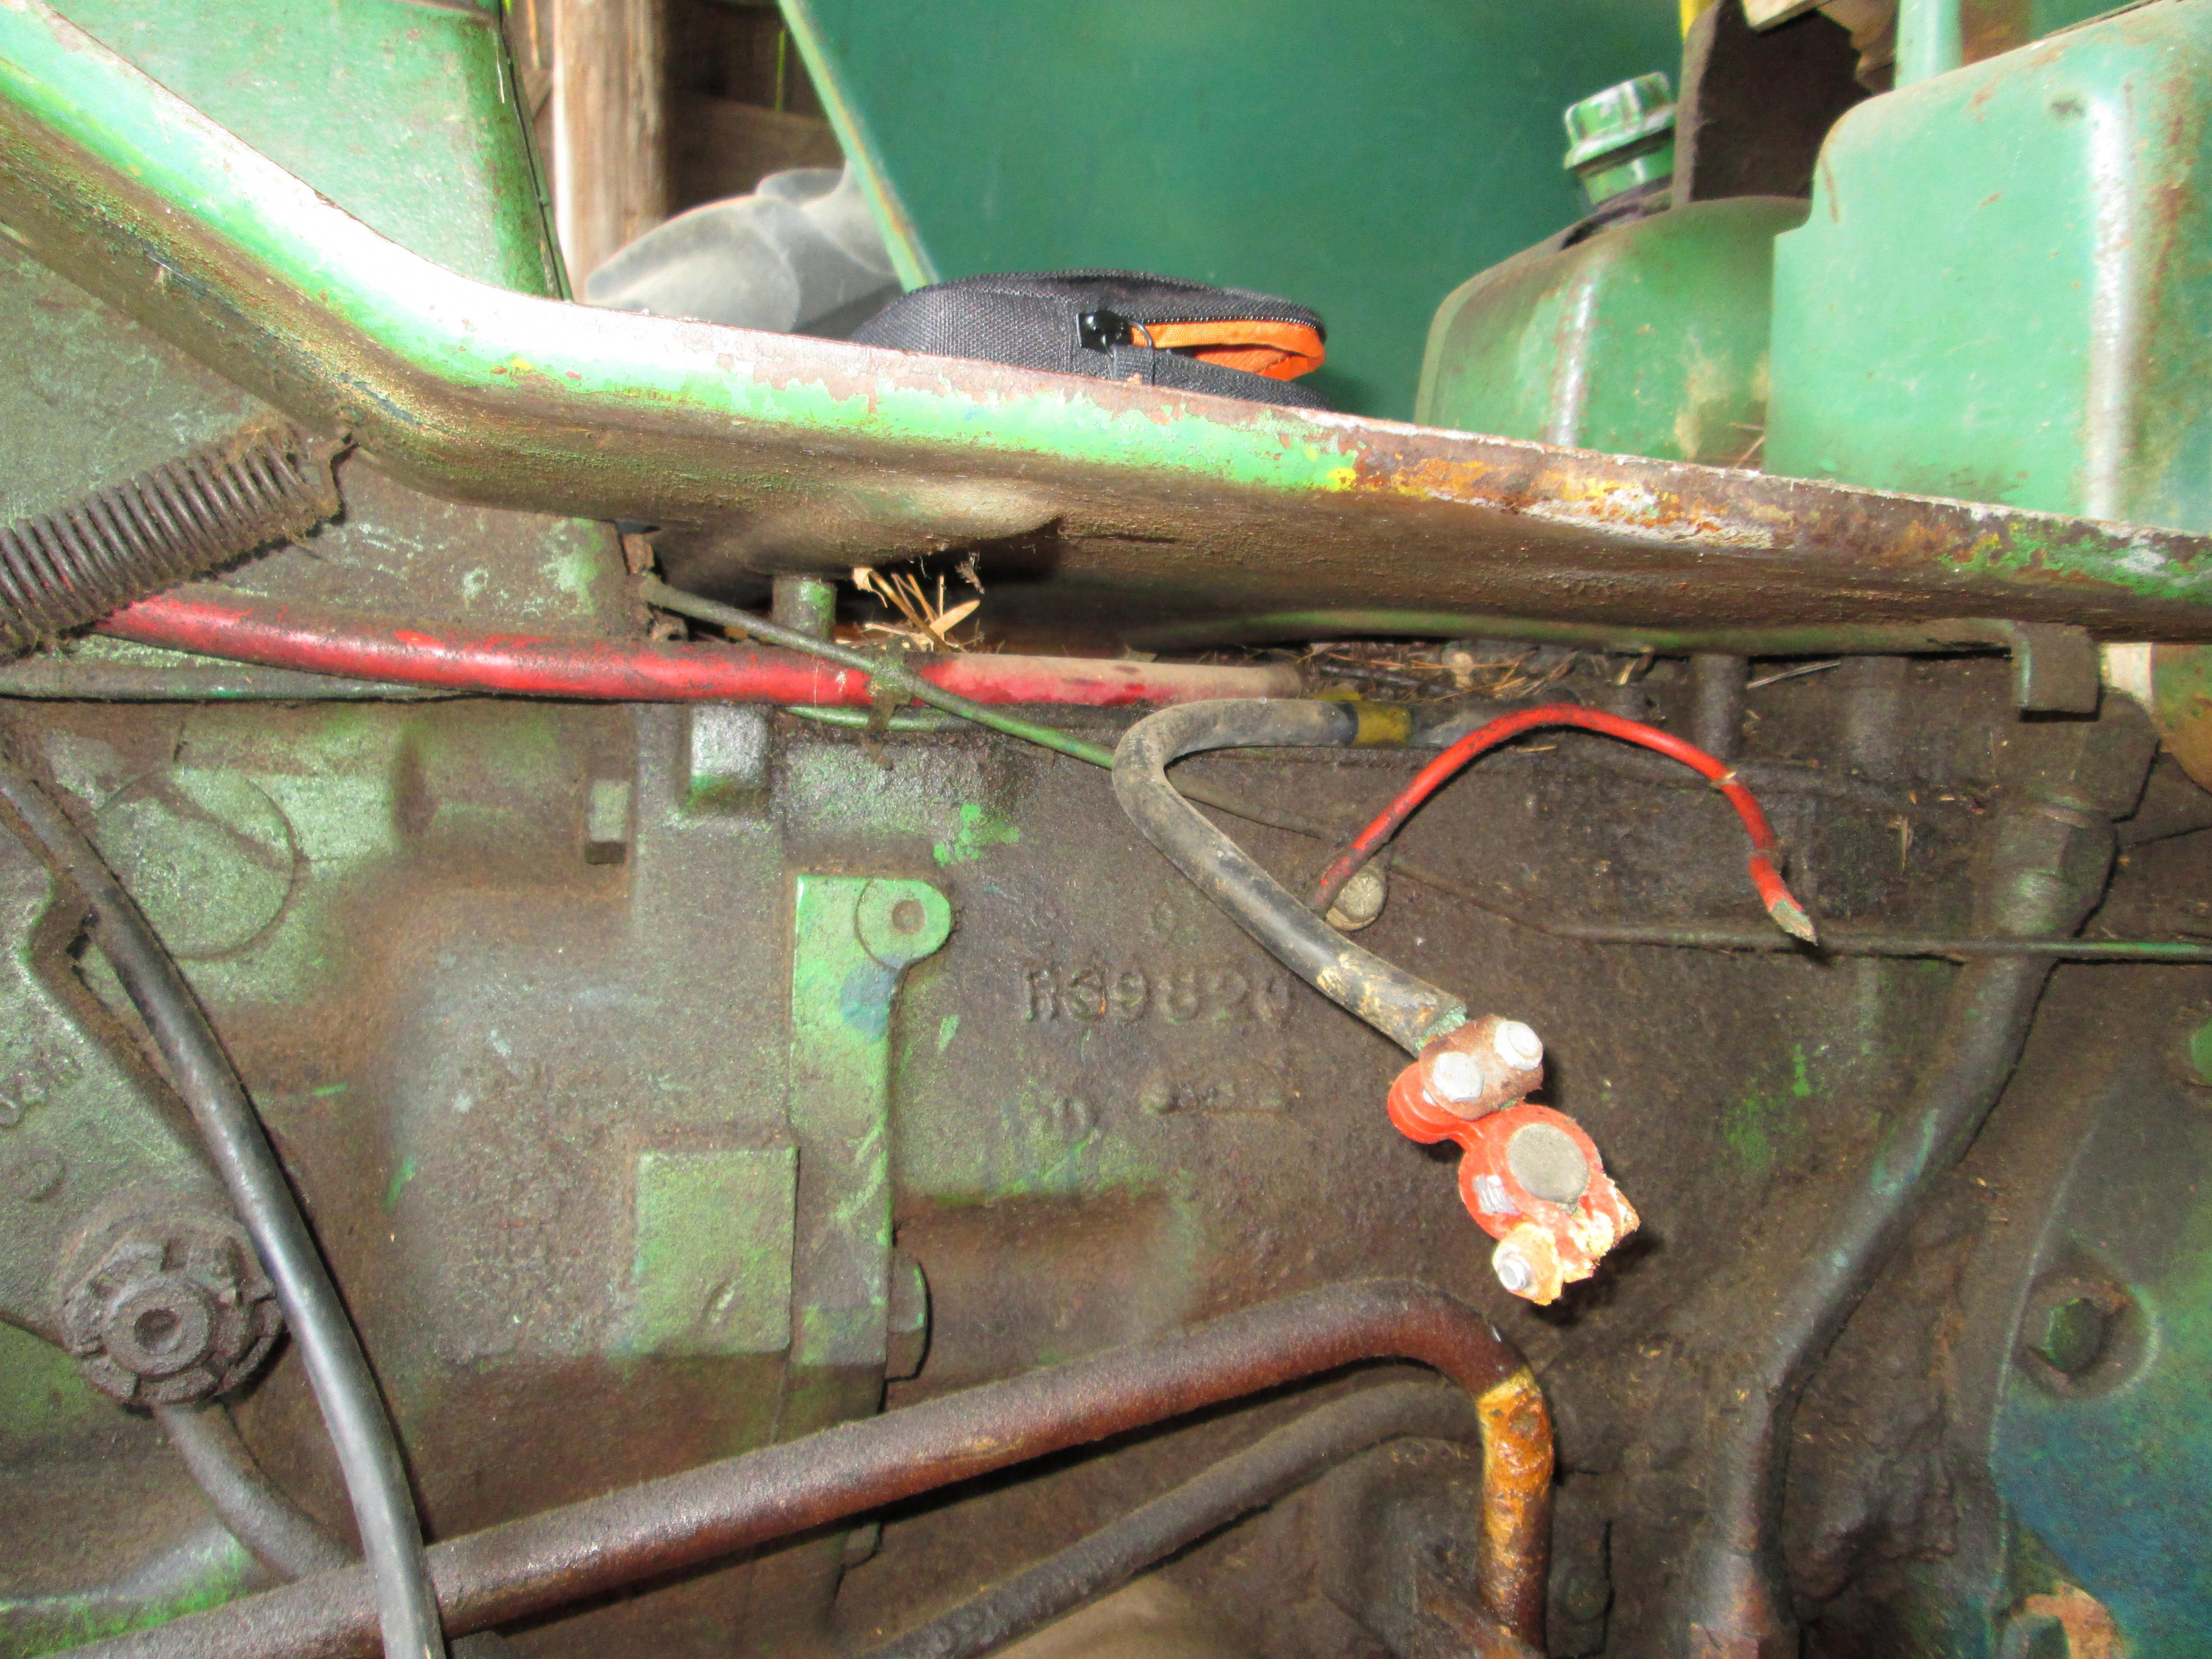 John Deere 3020 sel 24V Electrical System | Green Tractor ... on jd 4010 wiring diagram, jd 7520 wiring diagram, jd 4640 wiring diagram, jd 4430 wiring diagram, jd a wiring diagram, jd 2510 wiring diagram, jd 70 wiring diagram, jd 1020 wiring diagram, jd 4020 wiring diagram, jd 3020 wiring diagram, jd 4320 wiring diagram, jd 2020 wiring diagram,